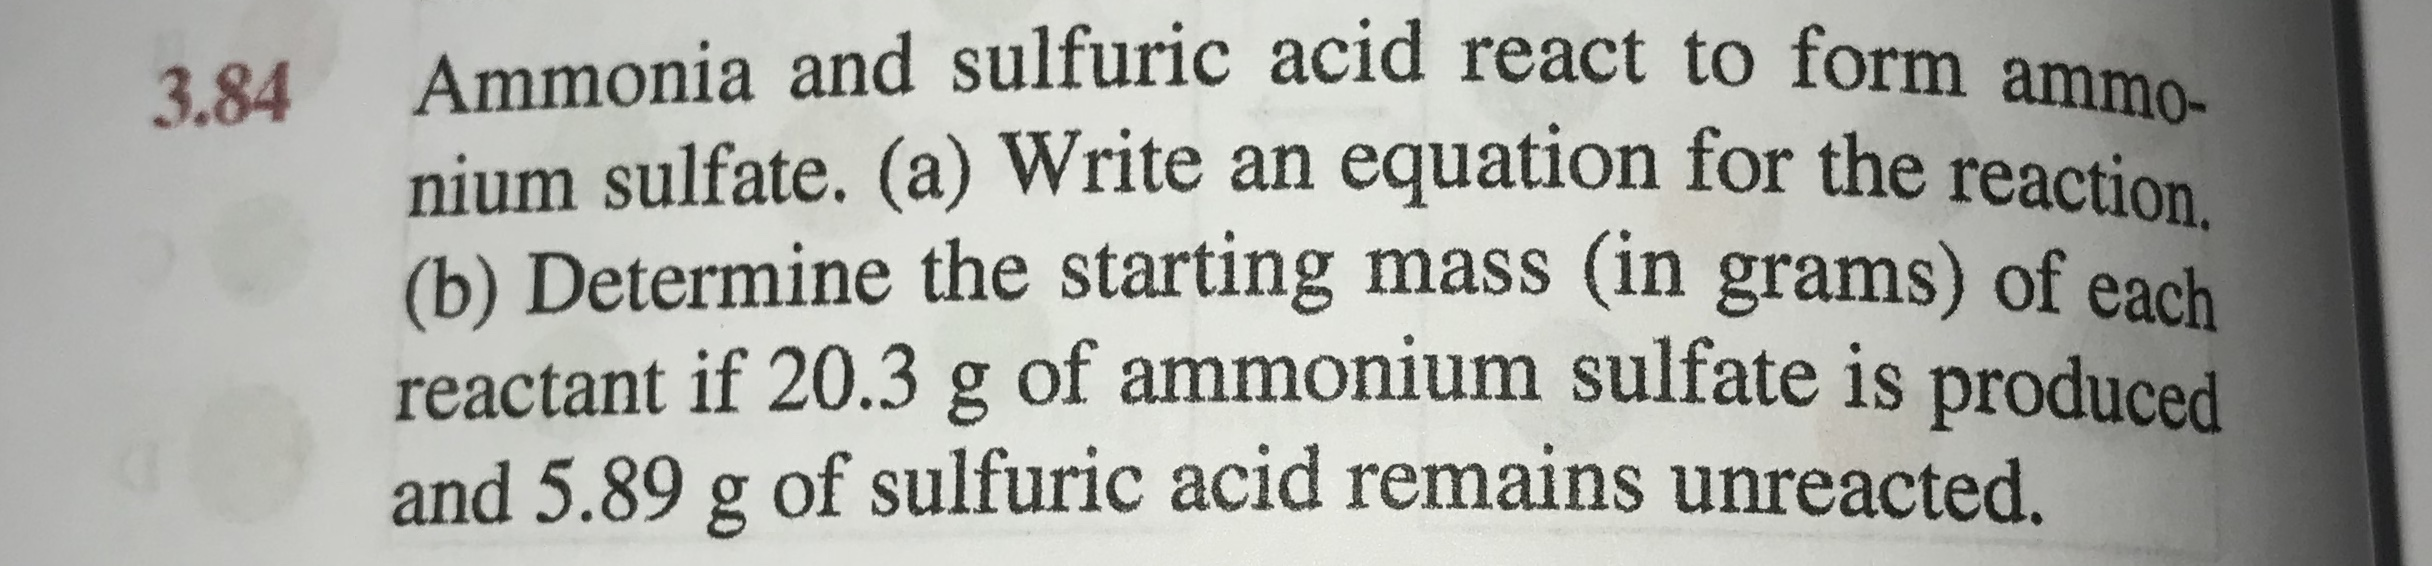 Ammonia and sulfuric acid react to form ammo nium sulfate. (a) Write an equation for the reaction (b) Determine the starting mass (in grams) of each reactant if 20.3 g of ammonium sulfate is produced and 5.89 g of sulfuric acid remains unreacted. 3.84